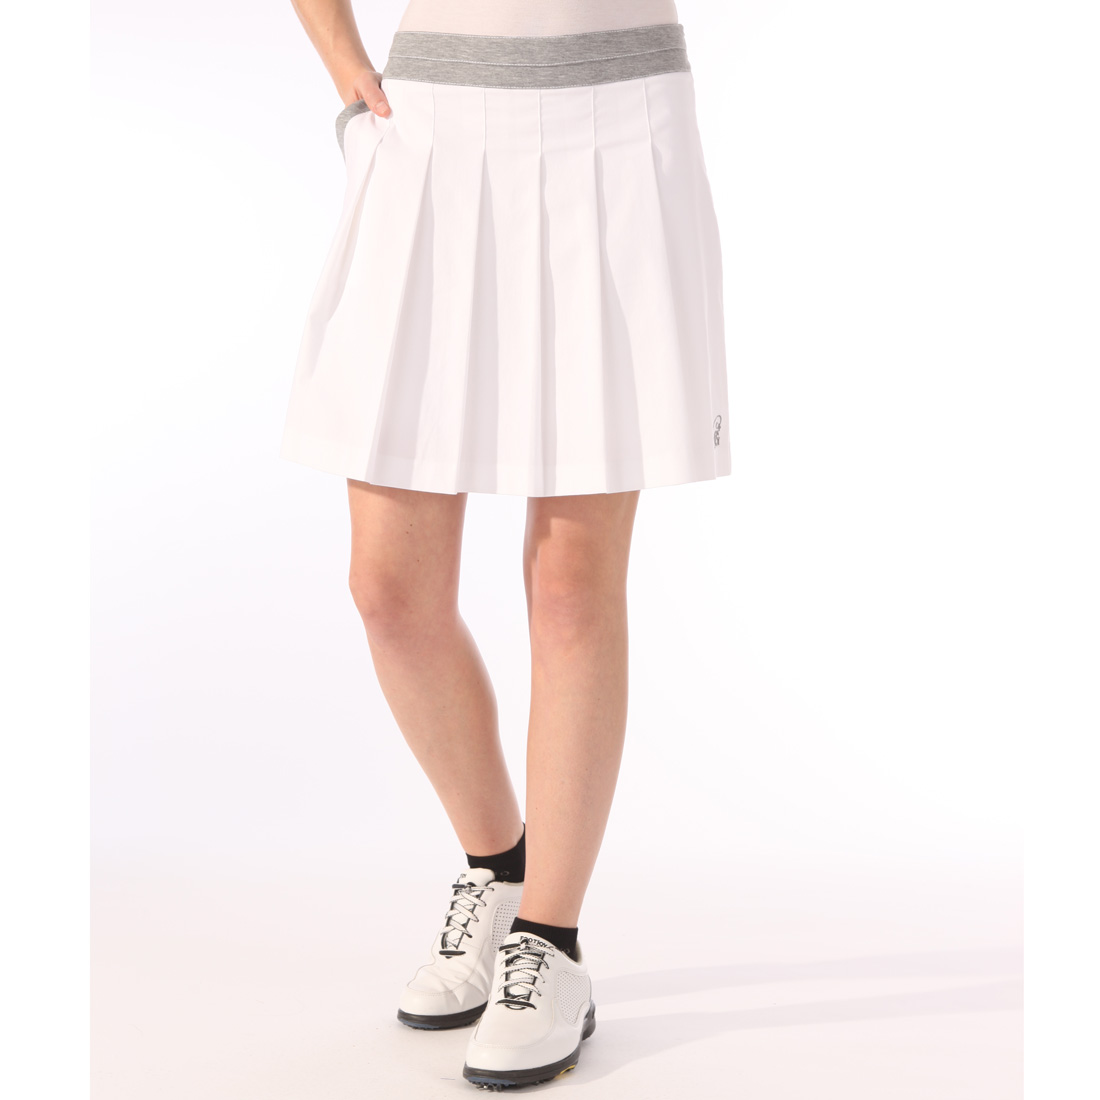 Damen Golf-Skort aus Baumwollmix mit Light Techno Stretch